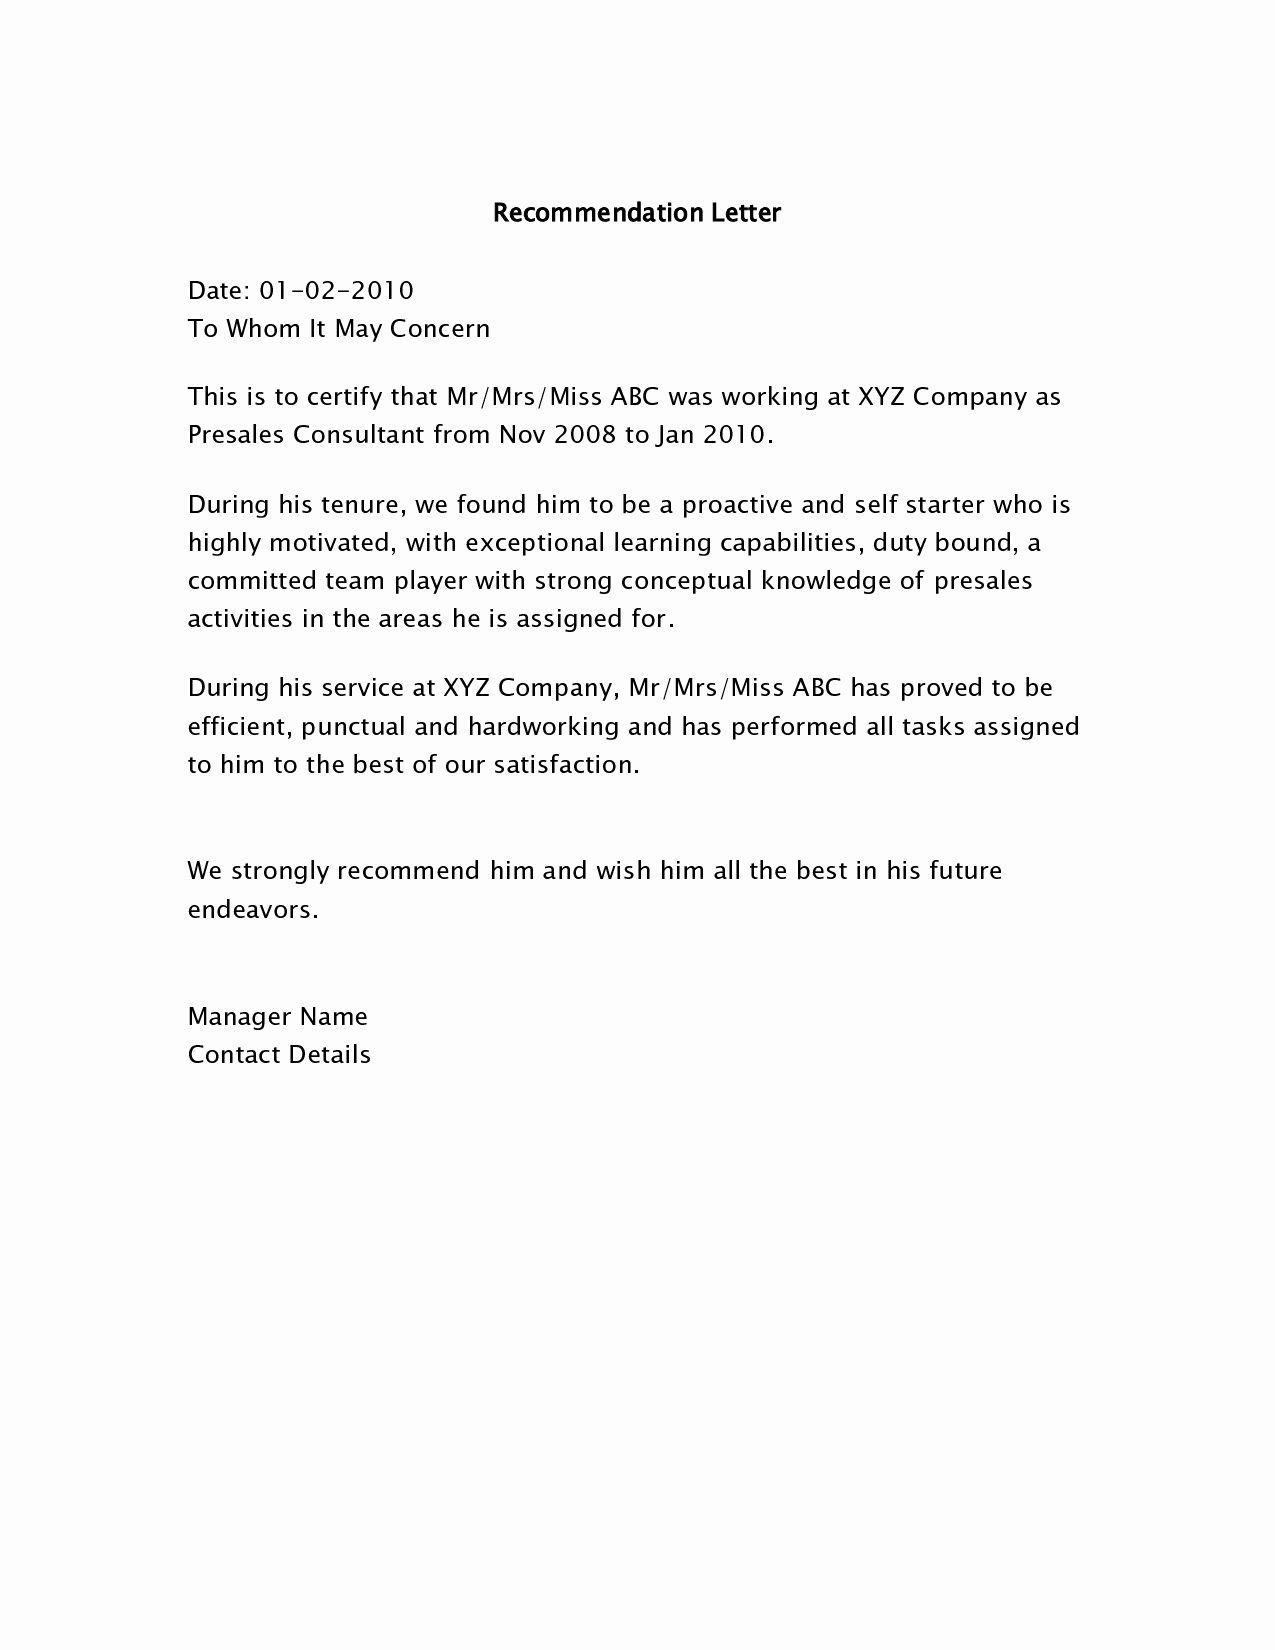 Job Recommendation Letter Sample Beautiful Letters Of Re Mendation Samples Bing